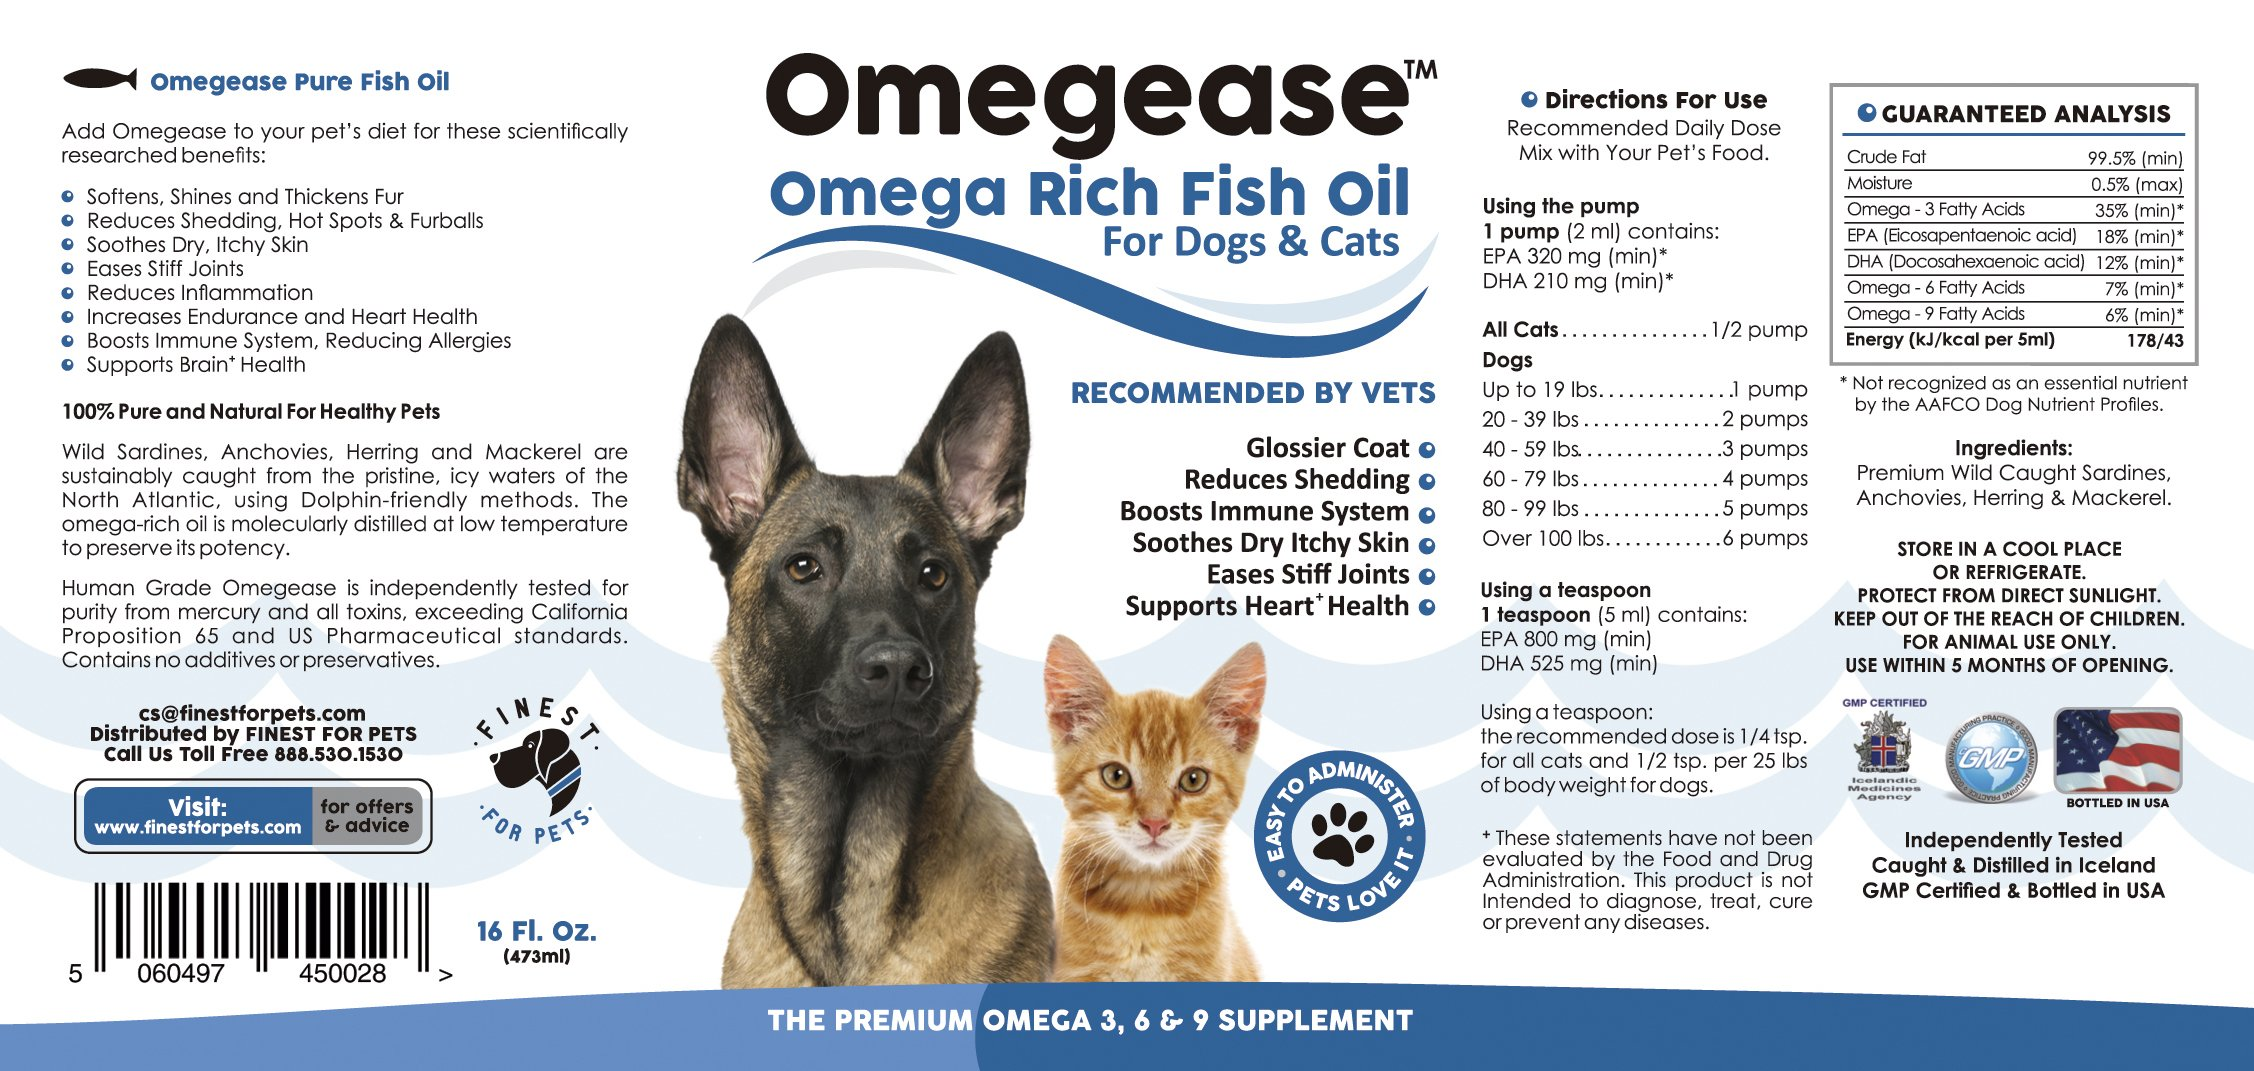 Omegease Omega 3, 6 & 9 Fish Oil for Dogs and Cats, 16 Ounces by Finest For Pets